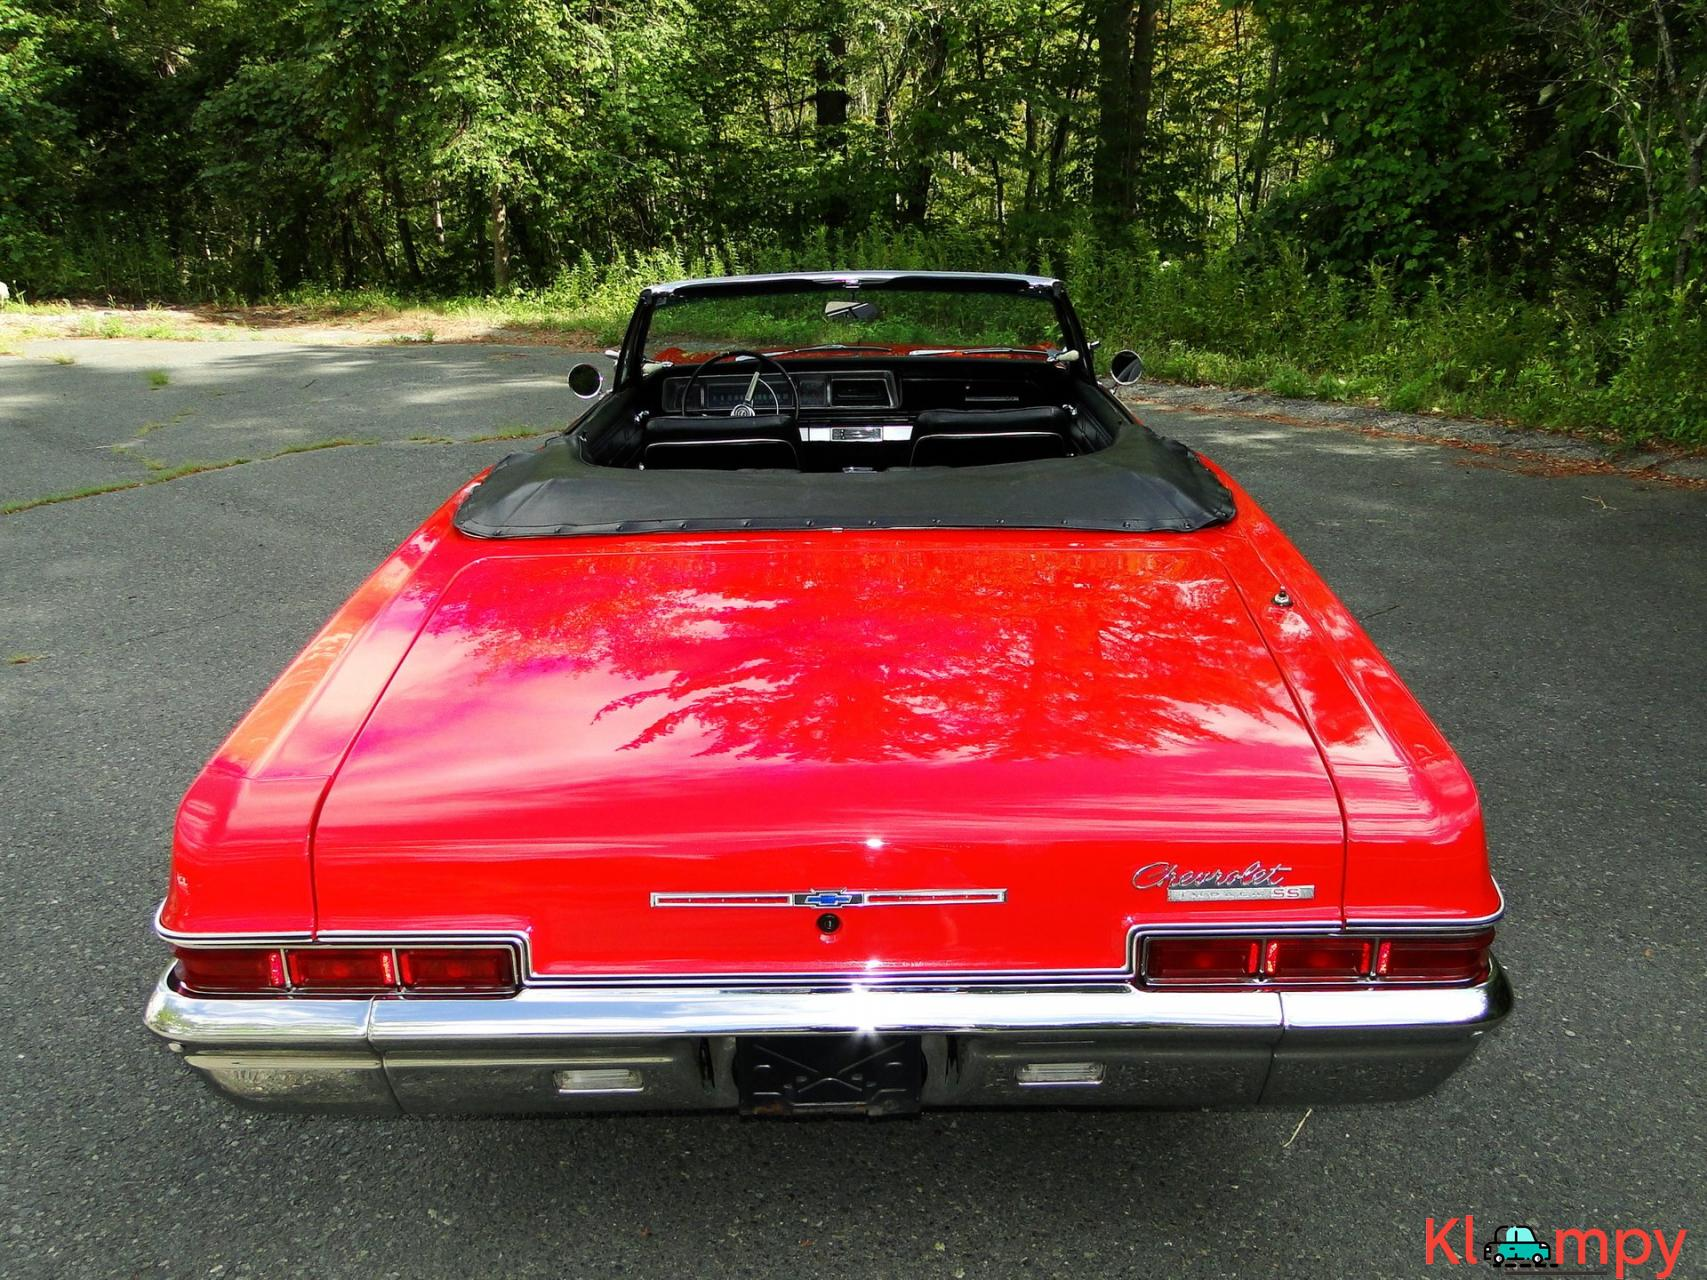 1966 Chevrolet Impala SS Convertible Regal Red V8 - 8/23